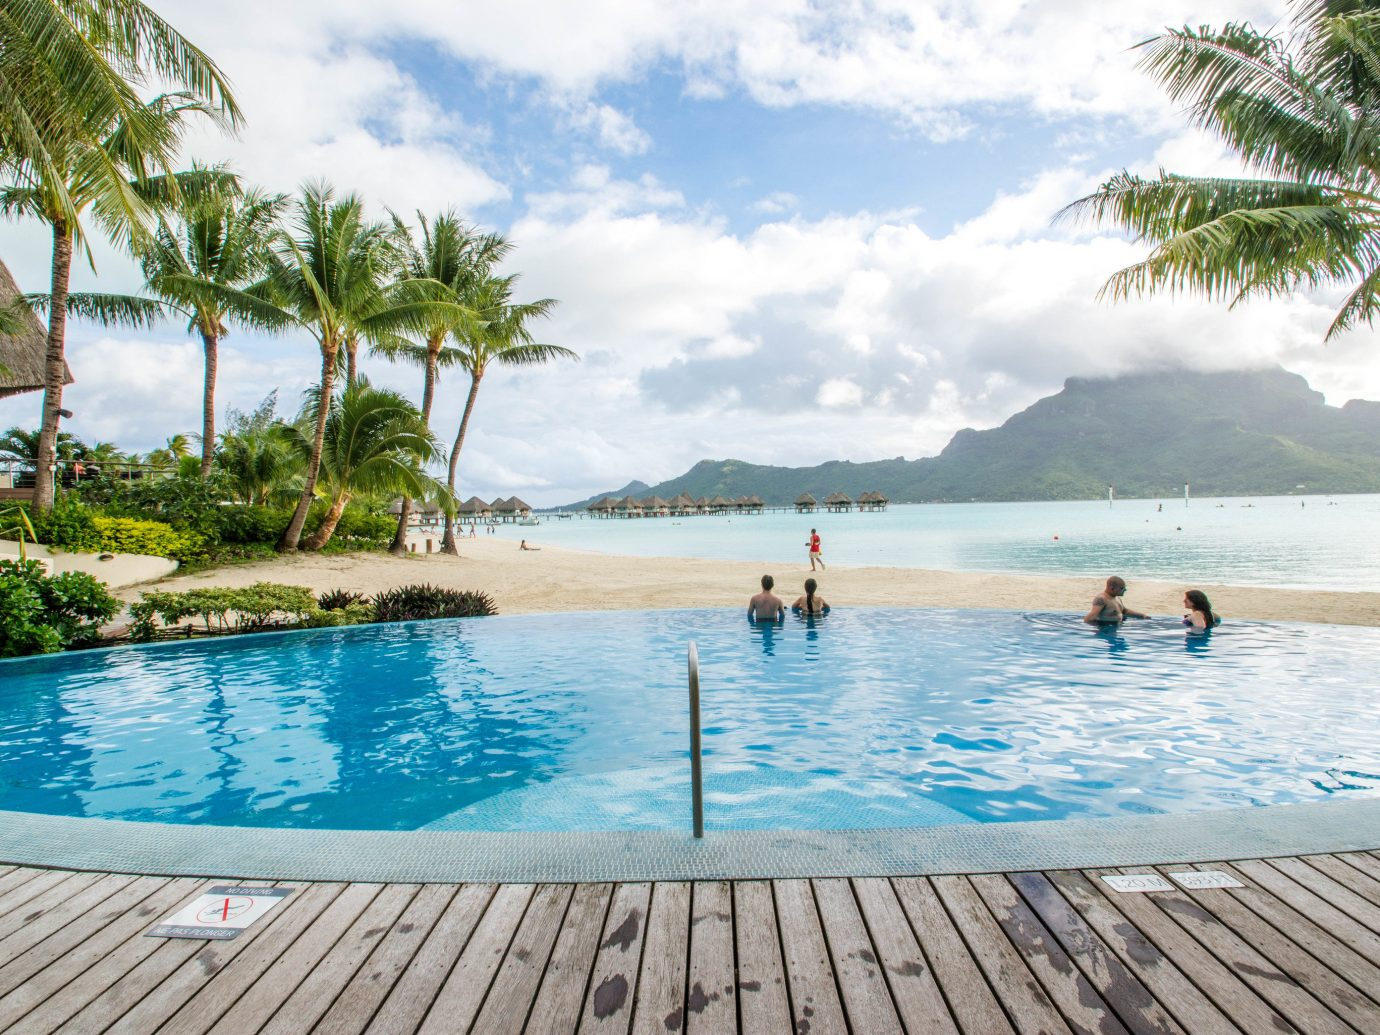 Hotels water outdoor sky tree Pool Beach swimming swimming pool leisure vacation palm Sea caribbean Resort Ocean Lagoon arecales bay estate Lake tropics blue shore sandy